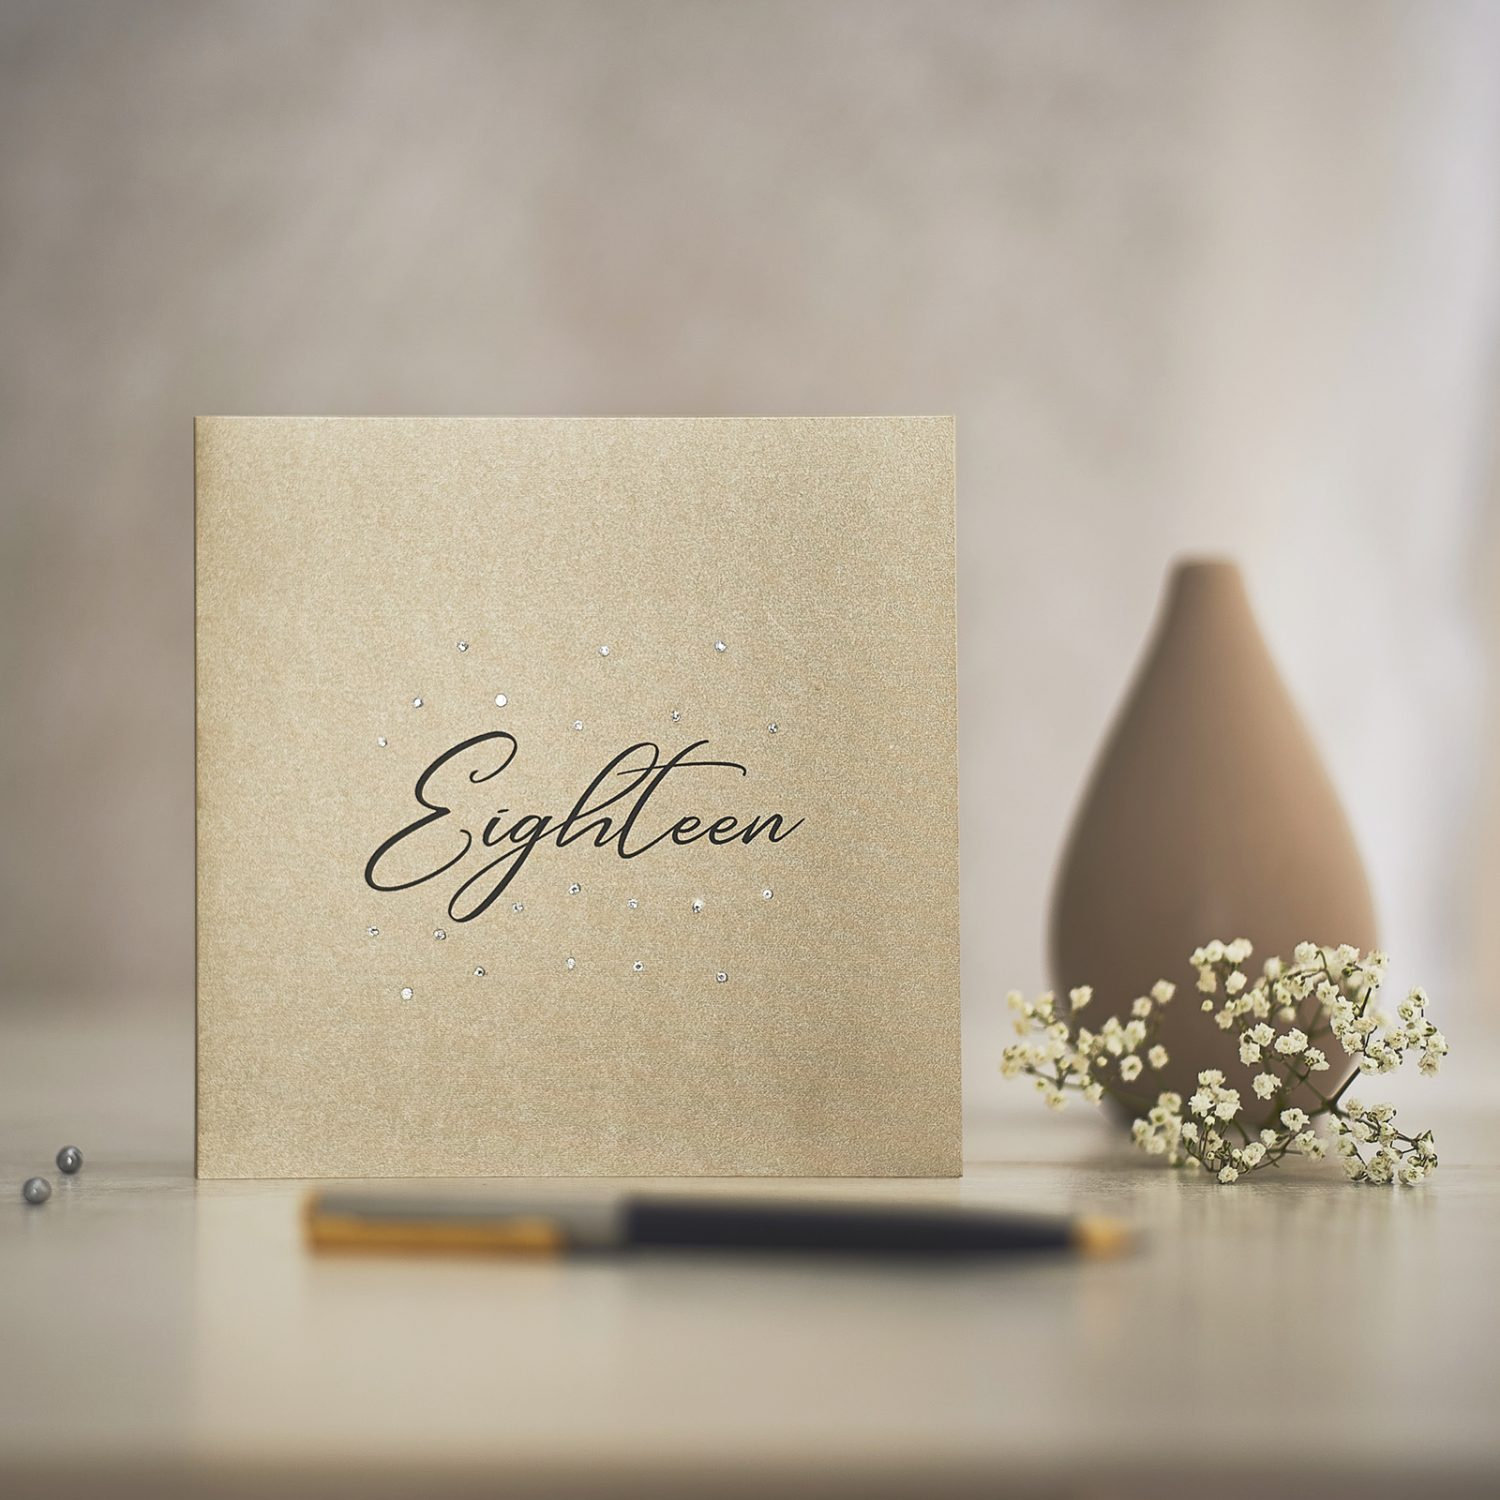 A professional product photograph of a eighteen celebration card for designer Mrs Lovesy